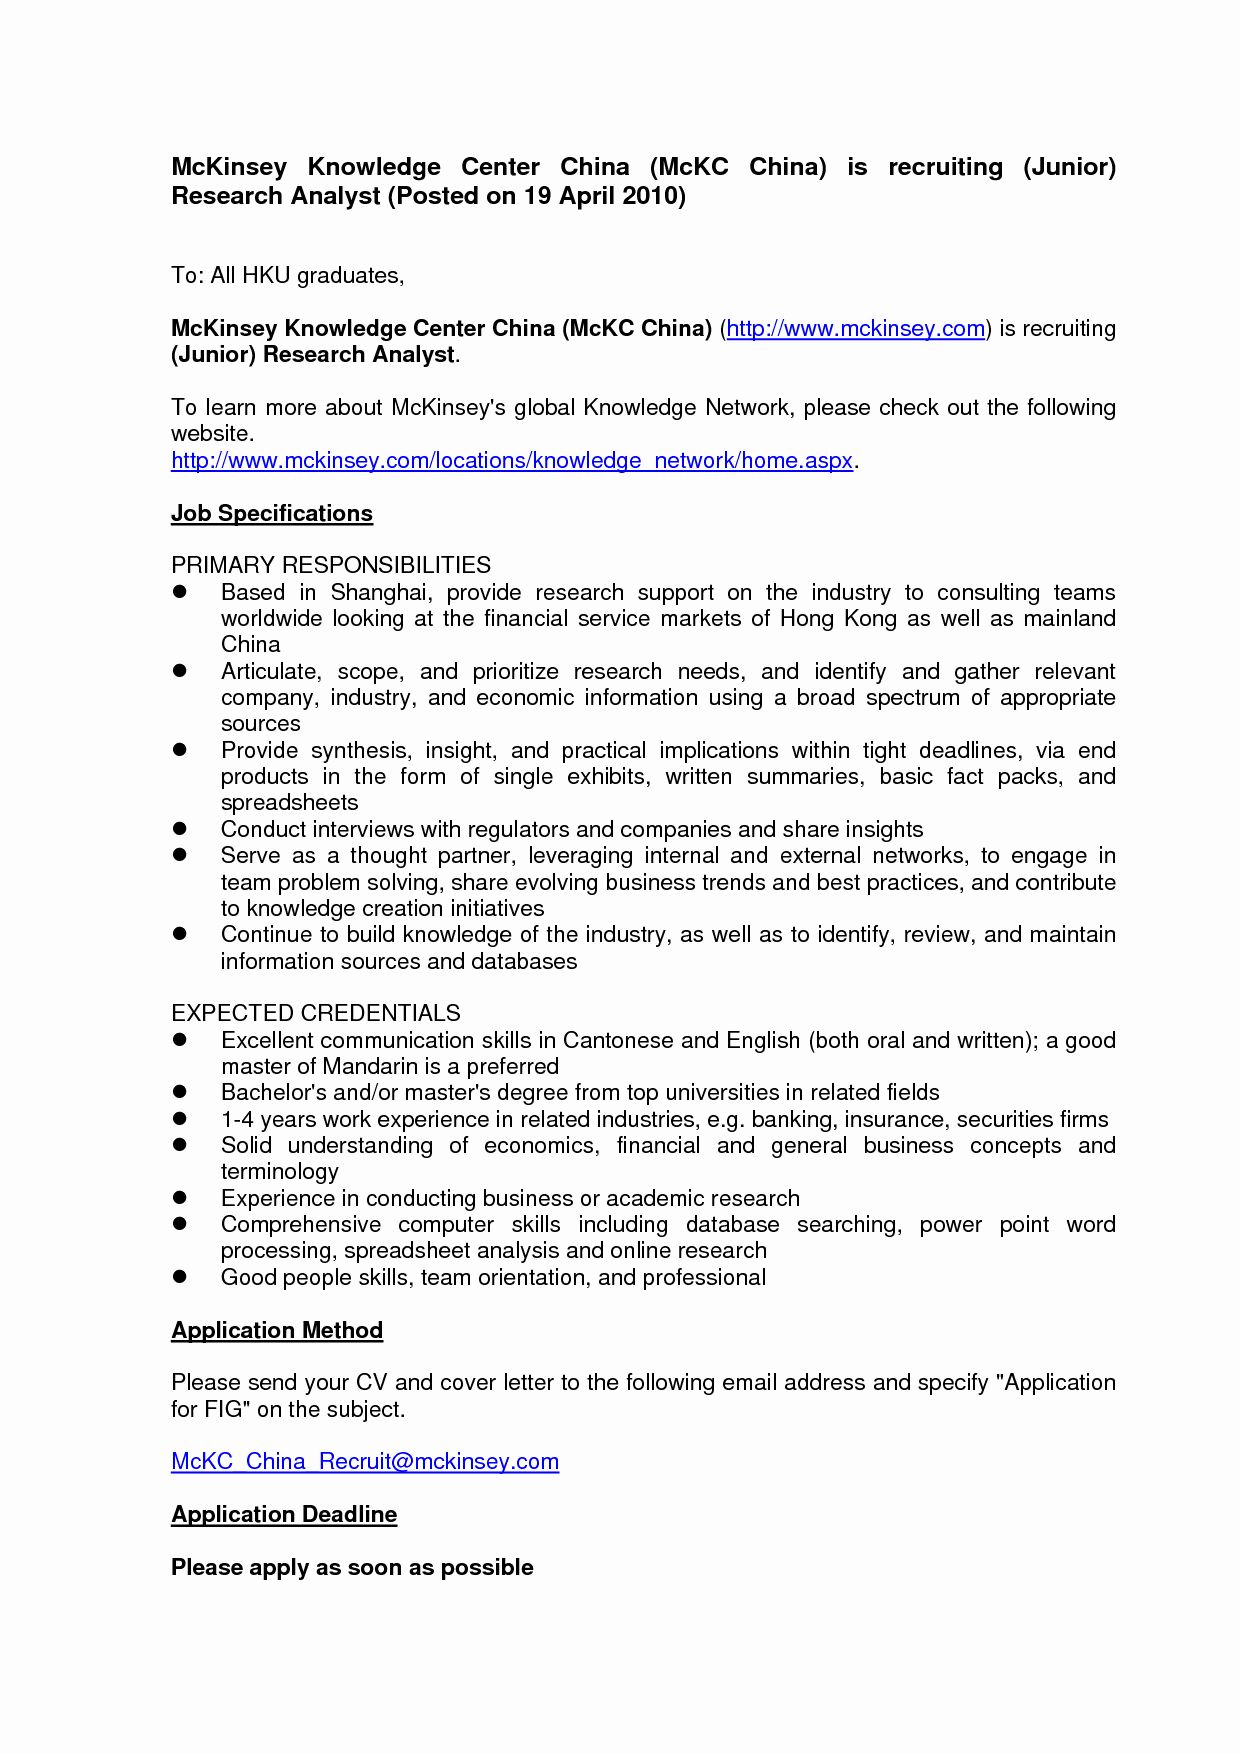 Interview Cover Letter Template - Resume Cover Letter Template Word Unique Od Consultant Cover Letter